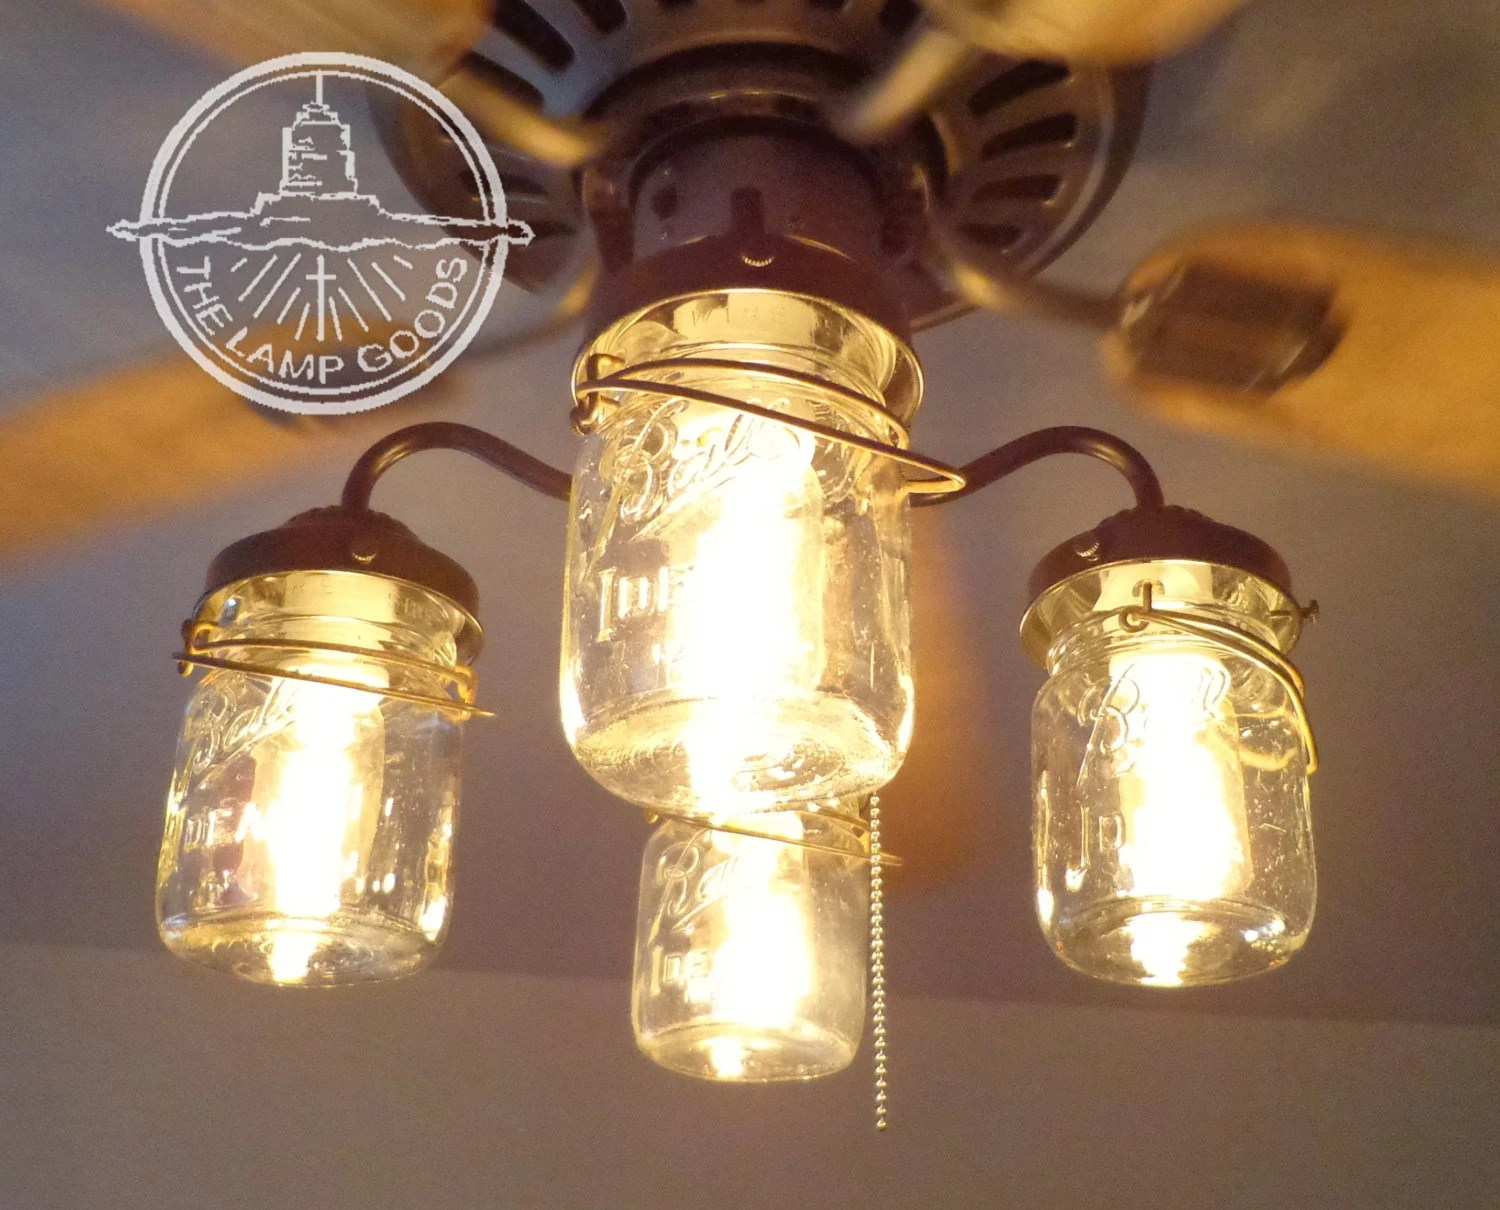 Modern Farmhouse Track Lighting Ceiling Fan Light Kit Vintage Canning Jar Mason Jar Chandelier Lighting Fixture Flush Mount Pendant Farmhouse Kitchen Track Lamp Goods